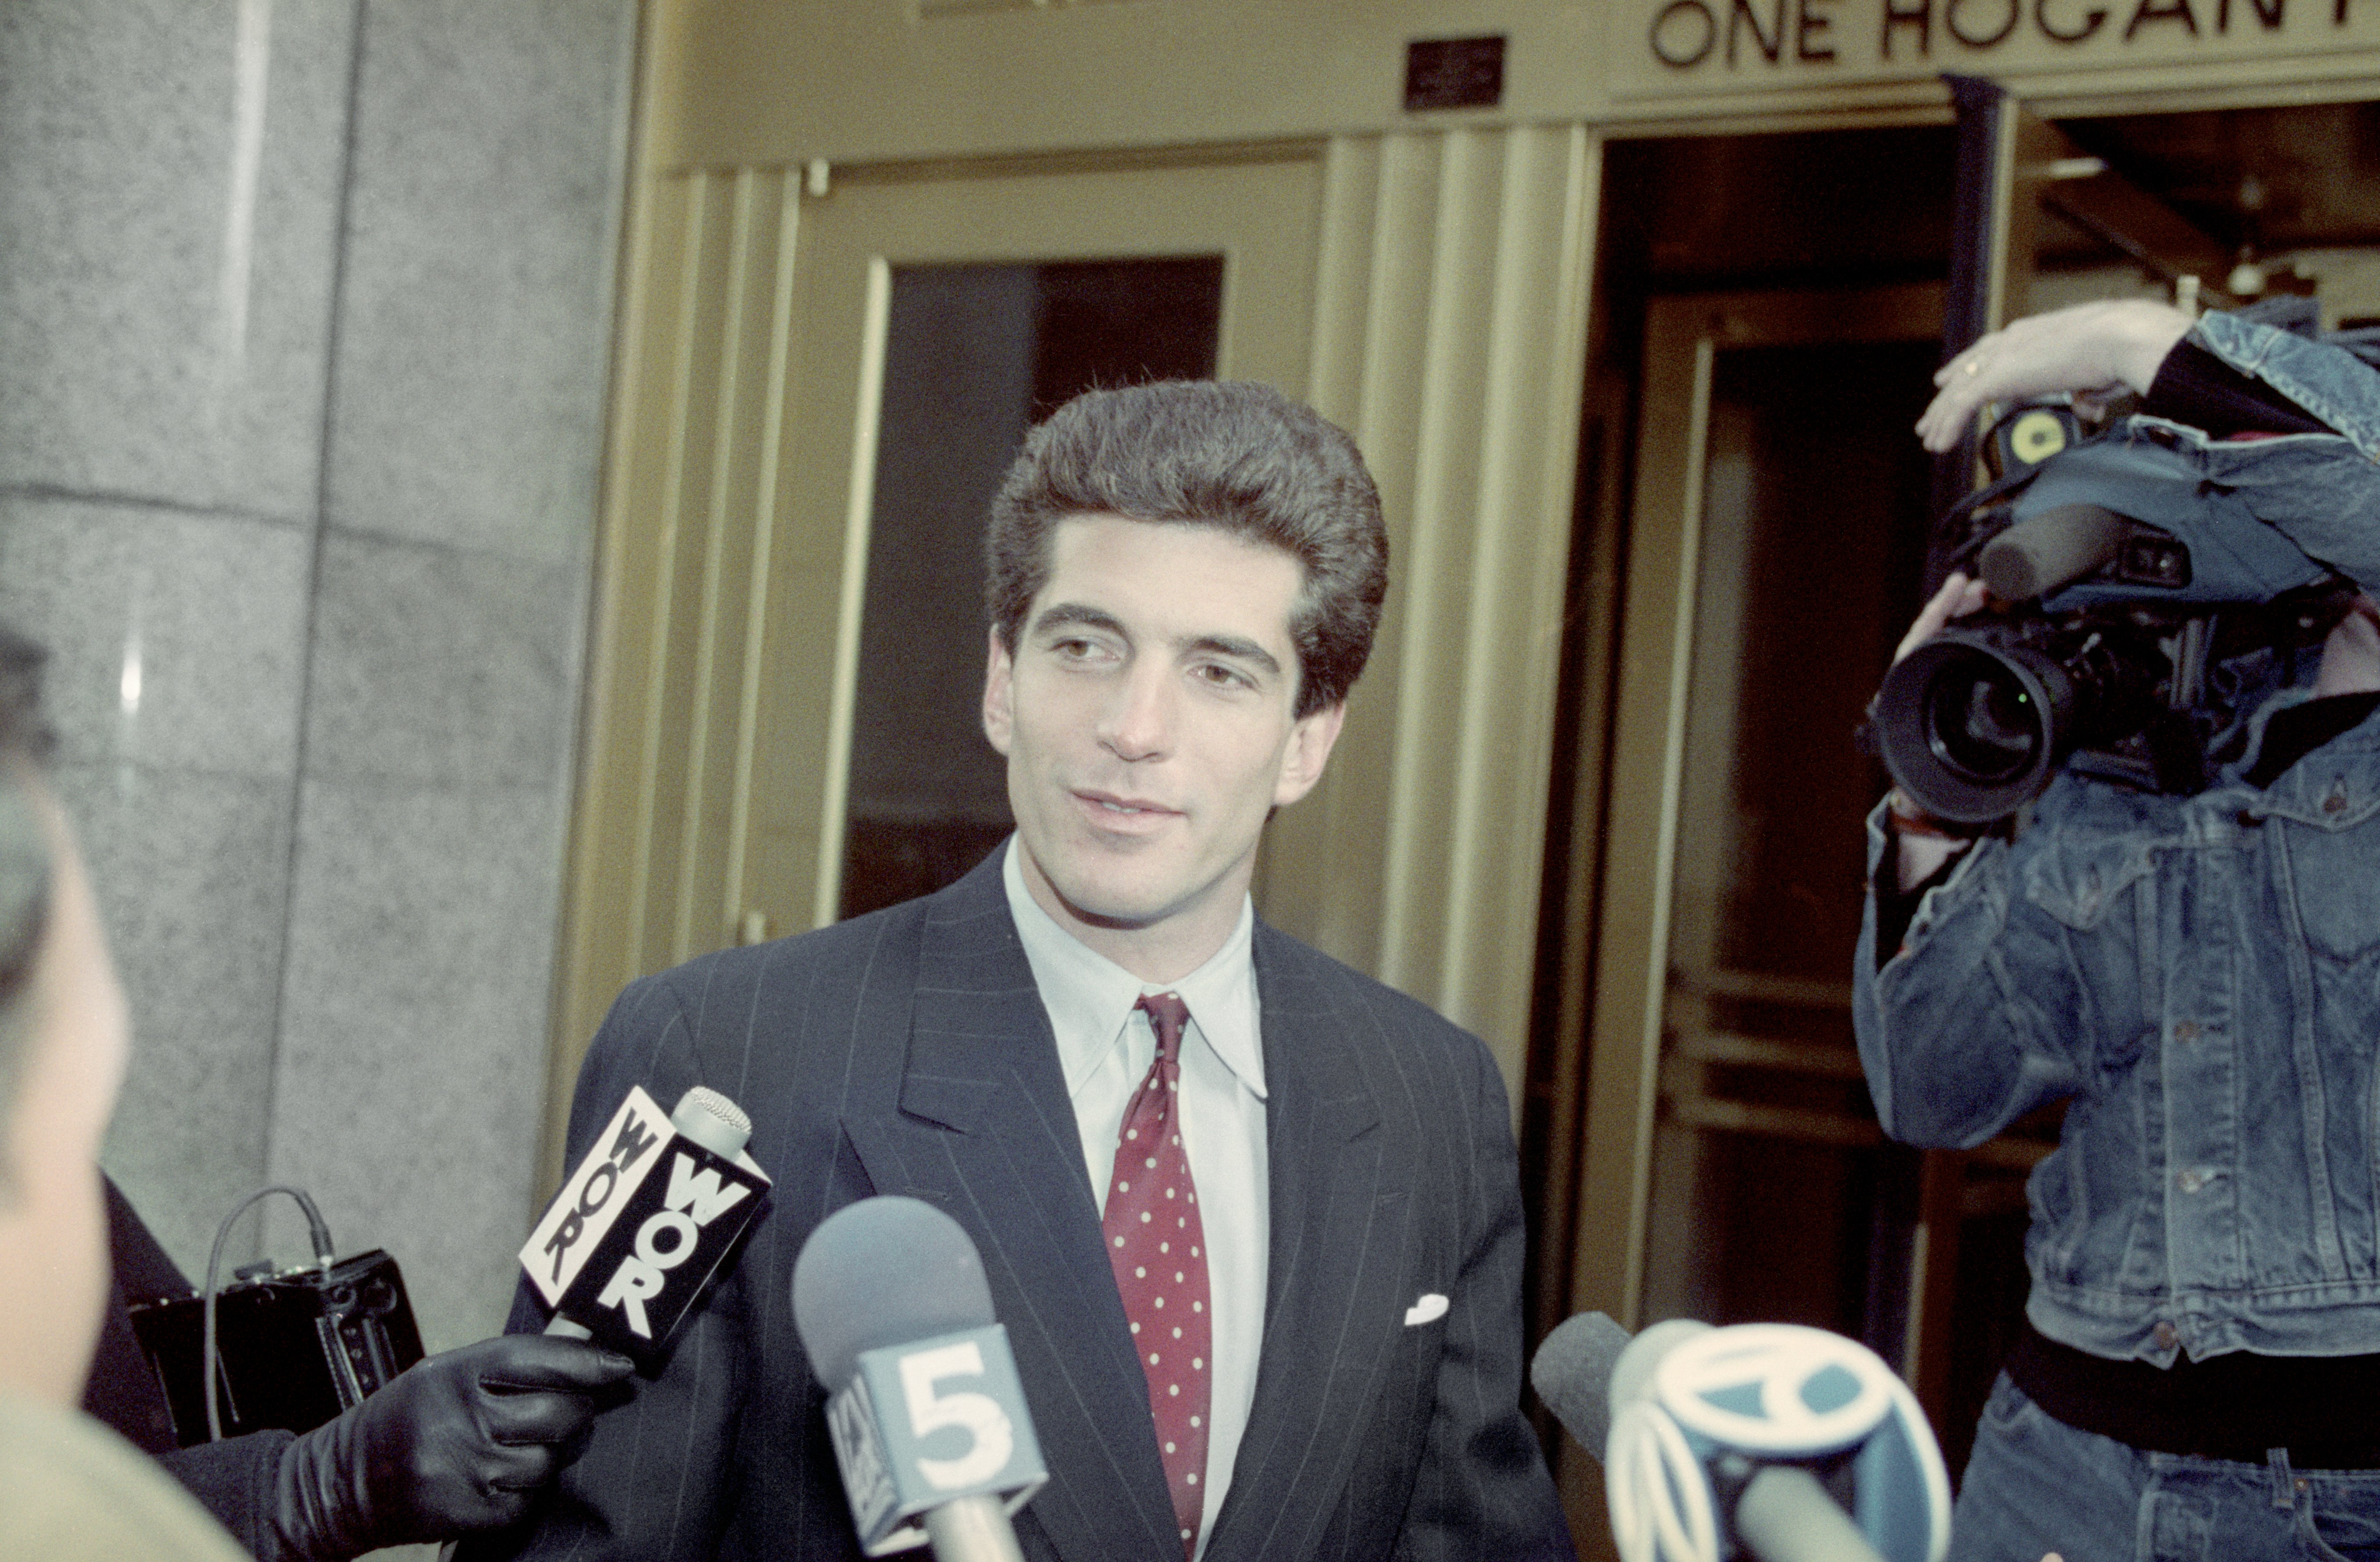 John F. Kennedy Jr. talks to reporters about passing the New York Bar examination | Photo: Getty Images